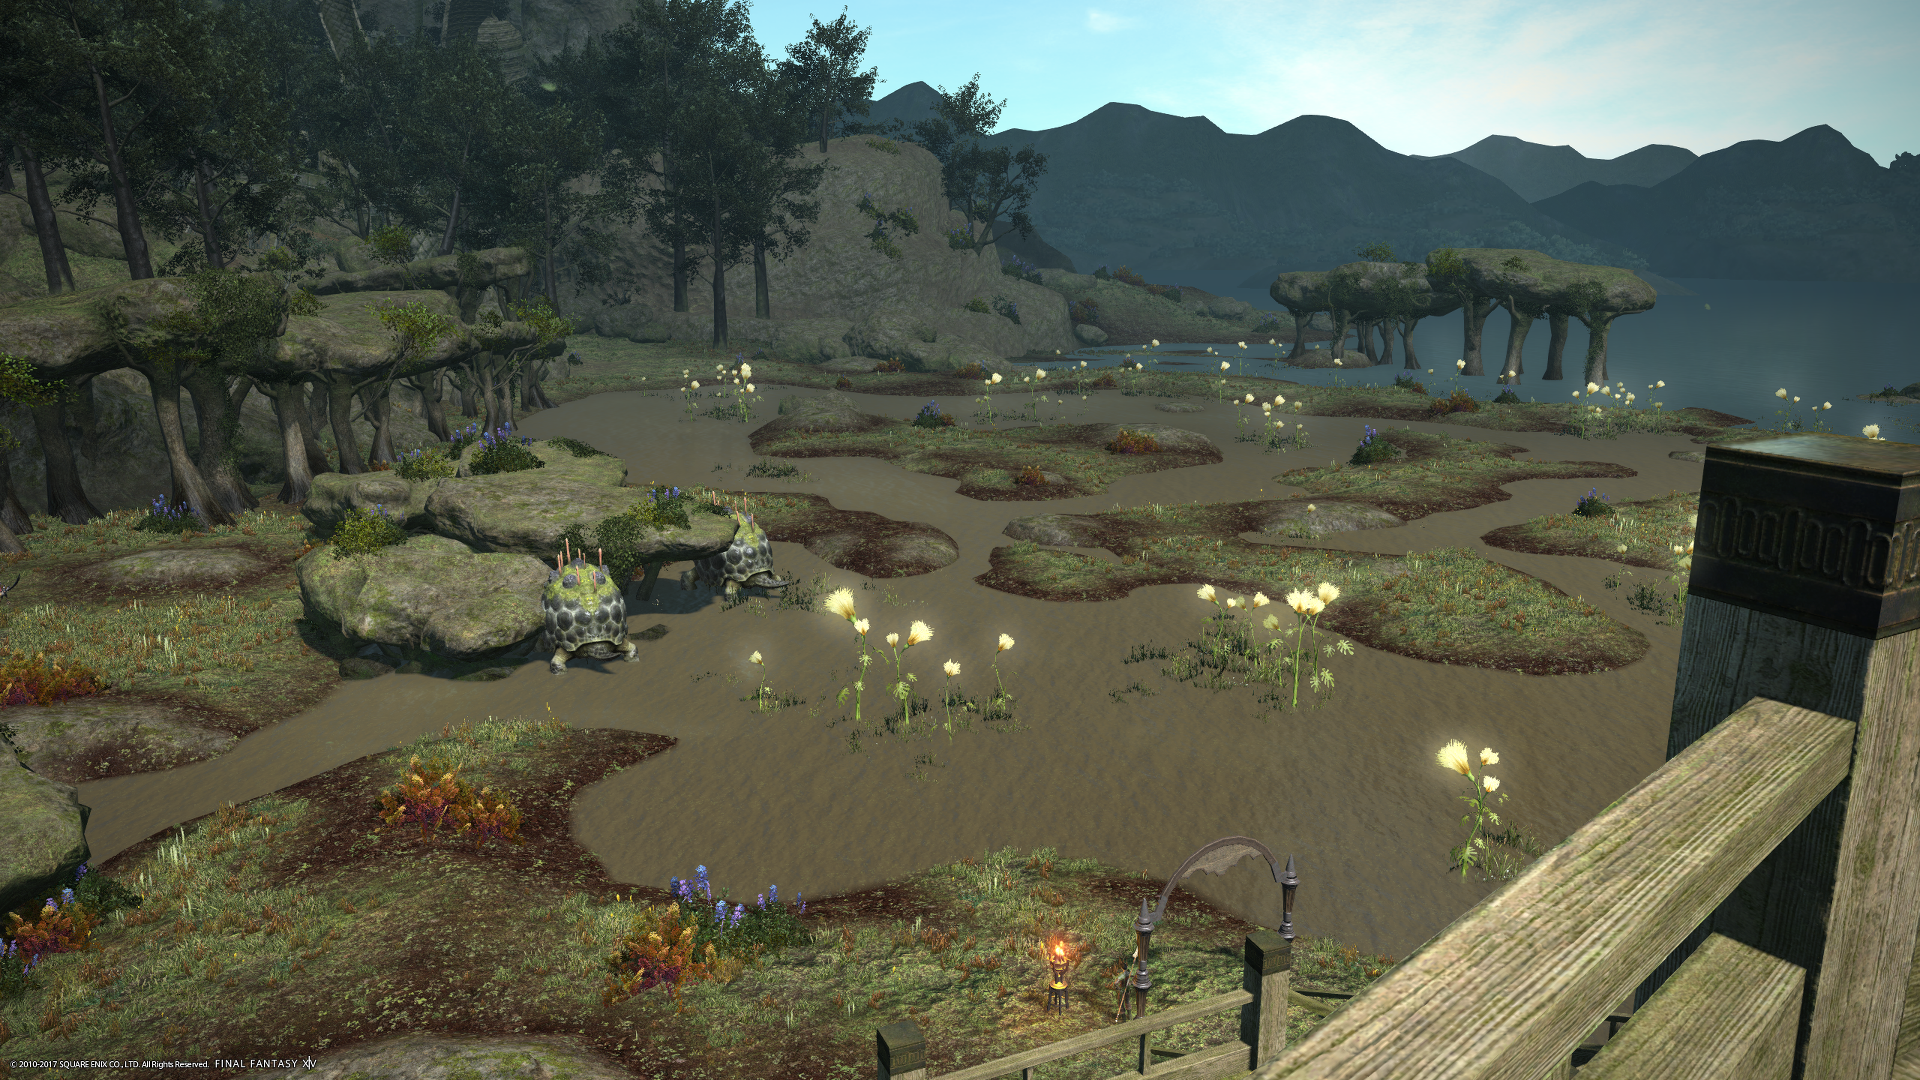 Putzing around in Final Fantasy XIV